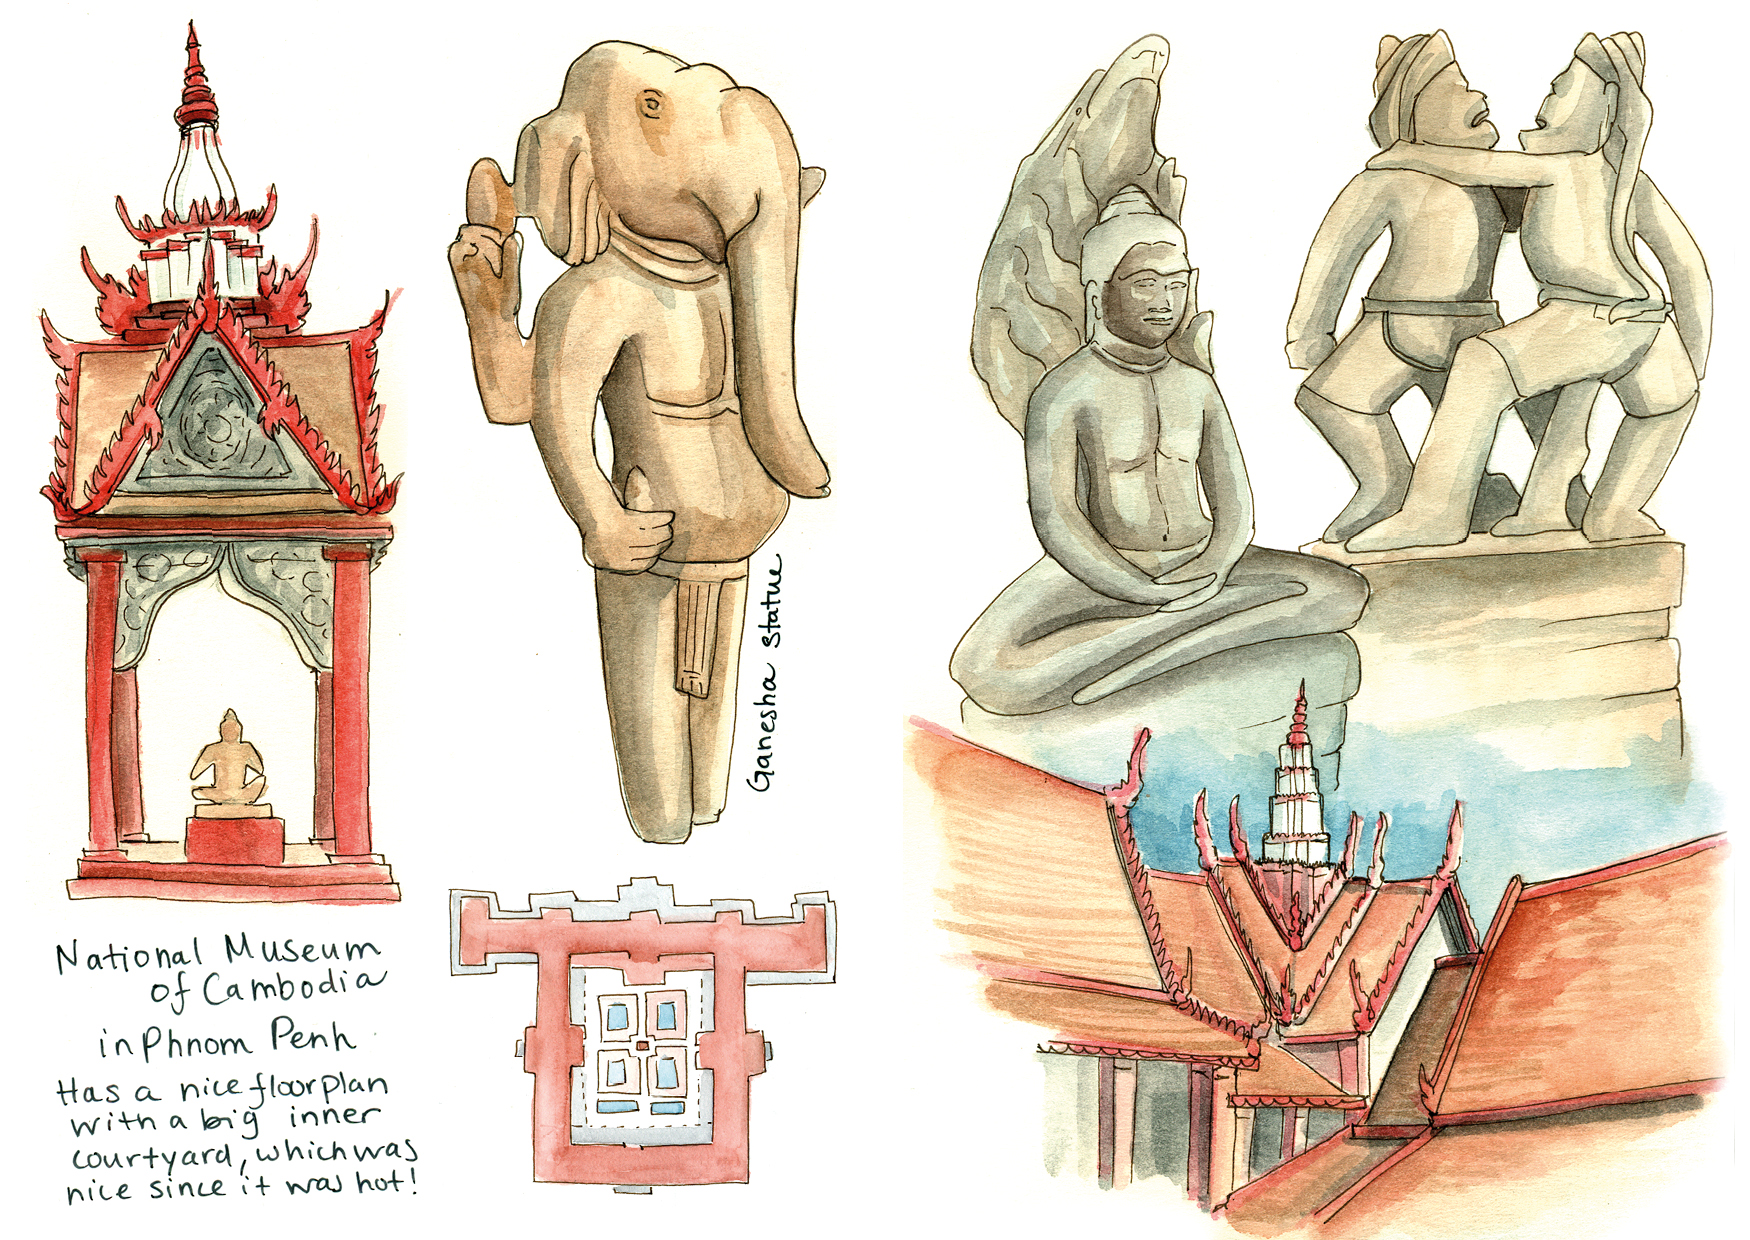 Sketchbook spread from the National Museum of Cambodia